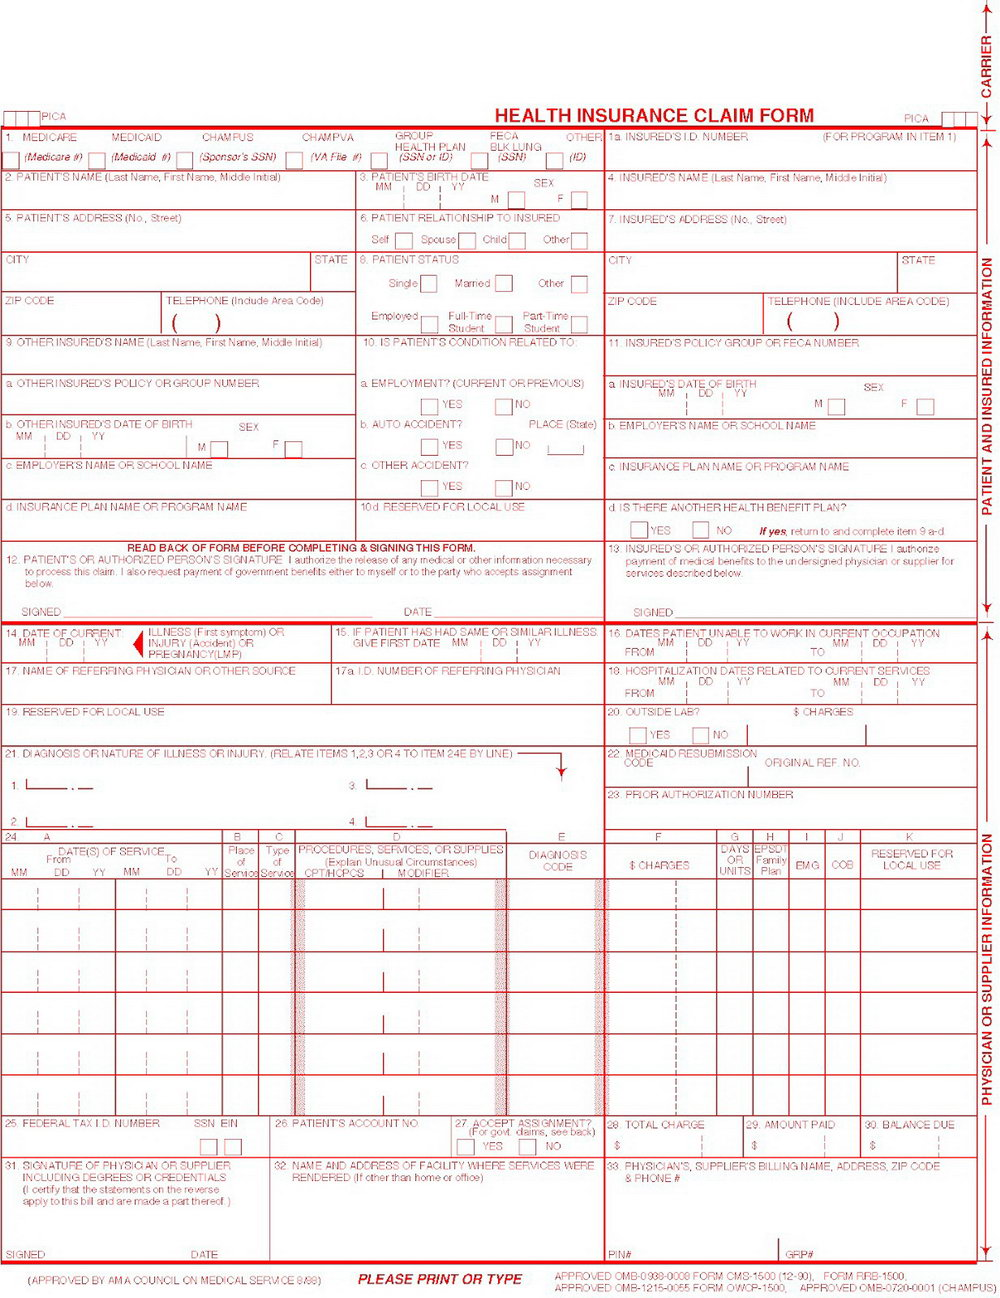 Hcfa 1500 Sample Form